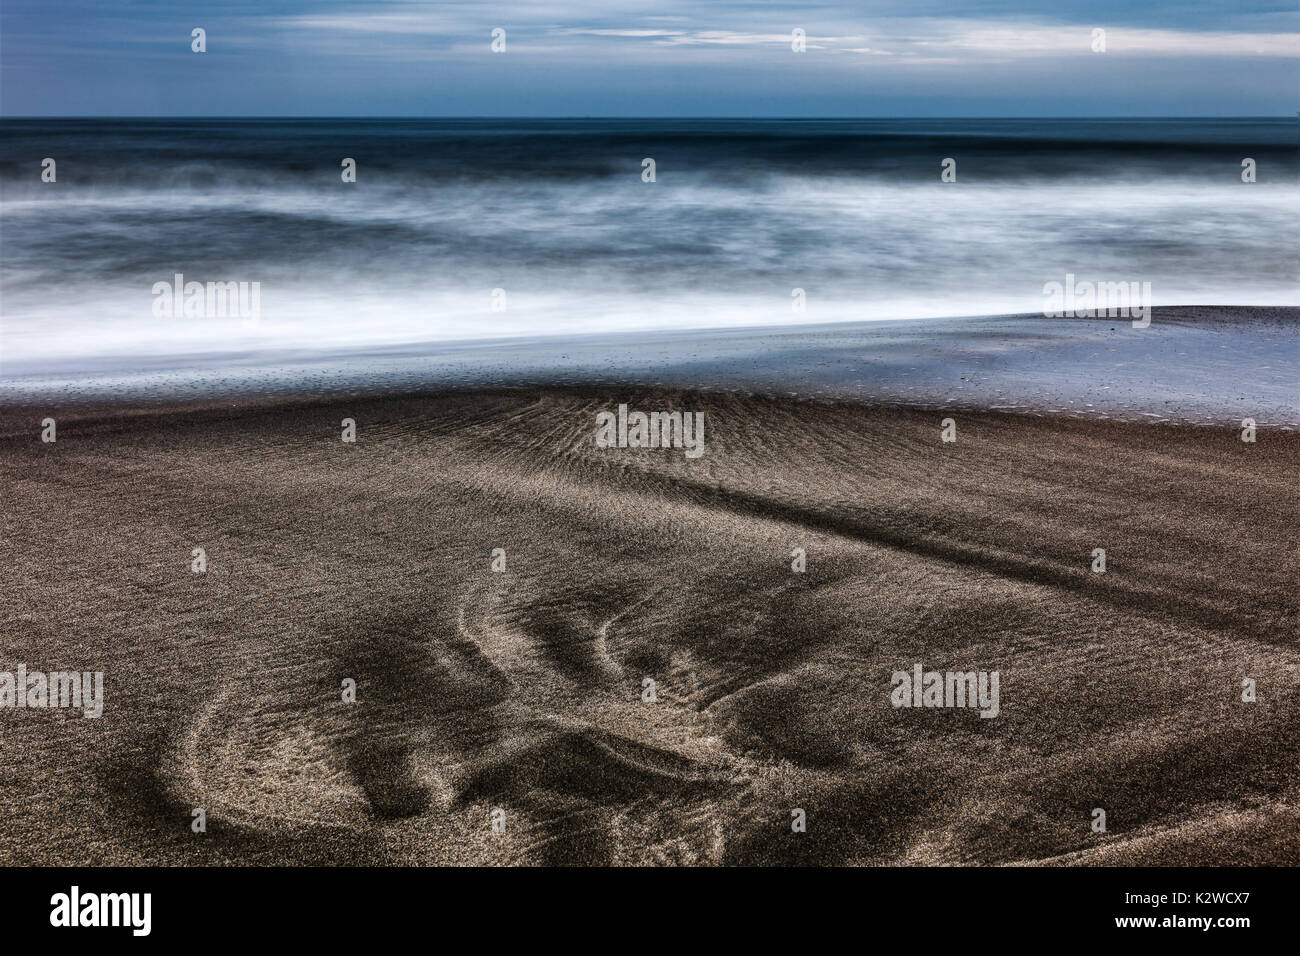 primordial footprint on the sand in front of the sea - Stock Image